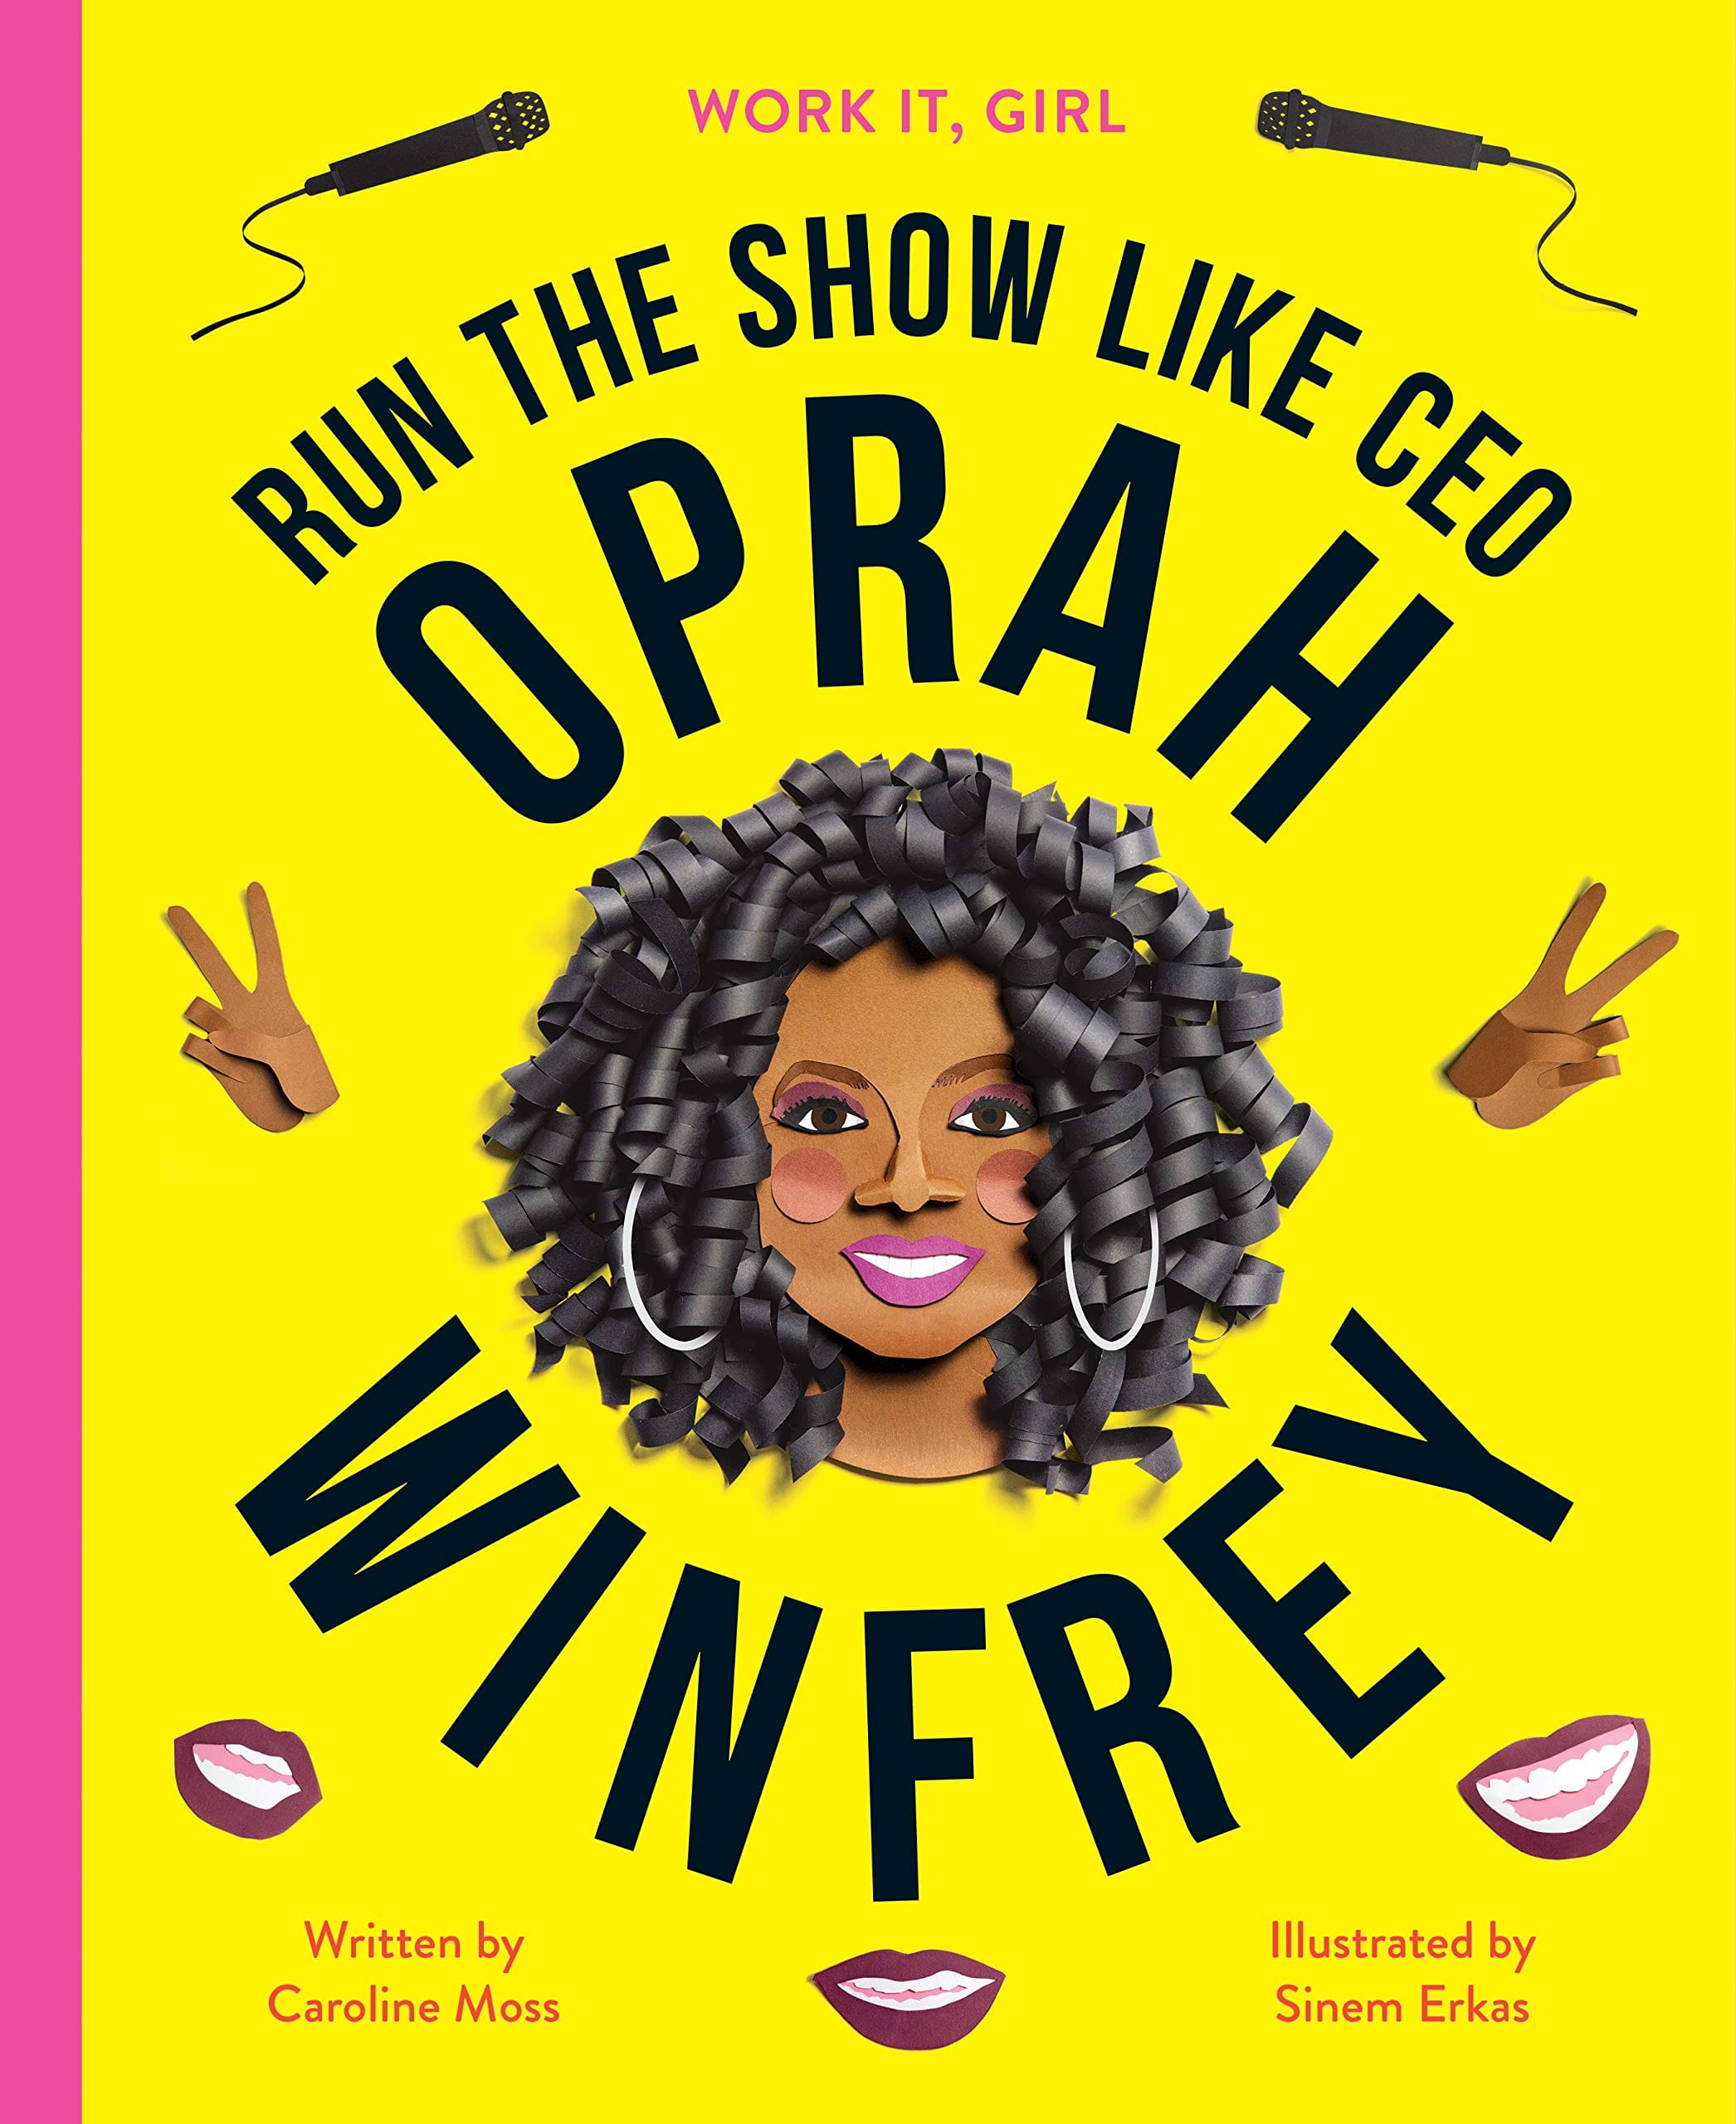 Work It, Girl Hardcover Books: Oprah Winfrey: Run the Show Like CEO $2.69, J.K Rowling: Boss the Bestseller List $6.62 + Free Shipping w/ prime